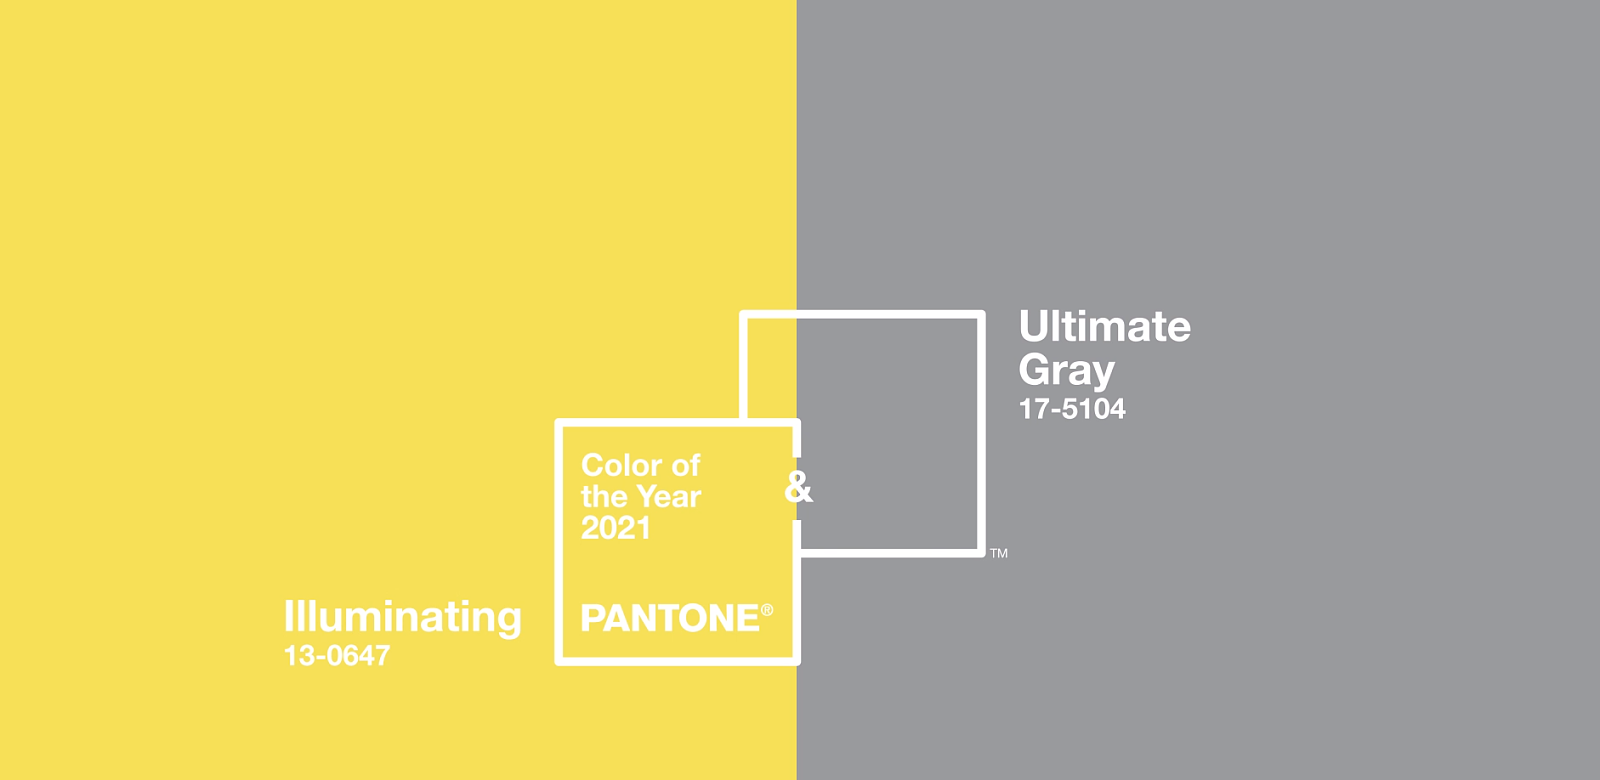 PANTONE-color-of-the-year-2021.png [89.14 KB]